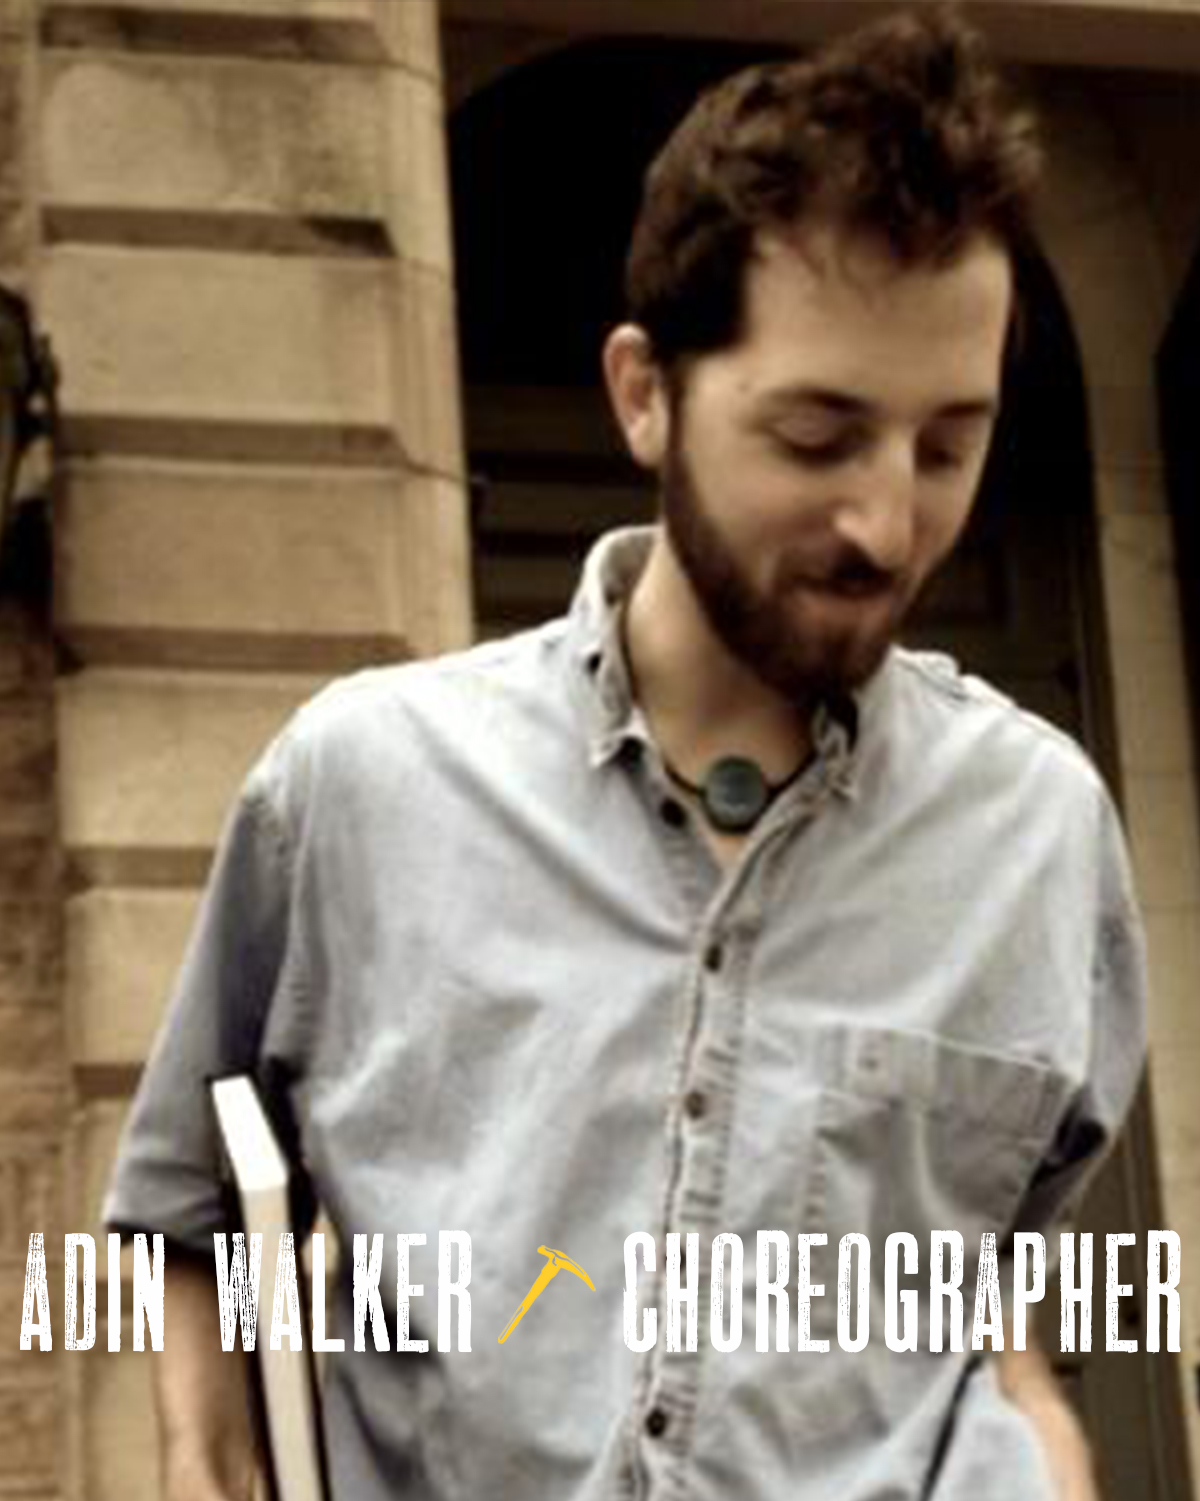 ADIN WALKER  (Choreographer) Off-Broadway and Regional as Director/Choreographer: Allison Gregory's  Not Medea  and L M Feldman's  Grace, or the Art of Climbing  (Art House),  Soft Butter  (Ars Nova),  The White Dress  (Araca Project),  One Arm  (Chautauqua Theatre), P in* and the Blue Fairy  (Drama League Residency and Dixon Place),  Gruesome Playground Injuries  (TheaterLab NYC),  Rent , and  Singin' in the Rain  (Princeton/McCarter.) Walker choreographed the NYC premiere of  Normativity  (dir. Mia Walker, NYMF) and has previously collaborated with directors Alexandru Mihail, Tracy Bersley, Whitney Mosery, Dawn Monique Williams, and Louisa Thompson. Walker has developed new work with Powerhouse/New York Stage and Film, the New Victory Theater, Arena Stage, Musical Theater Factory, OZ Arts Nashville, BAM, Art House Productions (Artistic Associate, 2017-2019), among others. Walker is associate director of Phantom Limb Company's now touring Butoh Dance and Puppetry spectacle  Falling Out  (BAM Next Wave 2018 premiere.) Walker trained at CityDance, Complexions, Joffrey, Washington School of Ballet, and has danced principle roles in works by Karole Armitage, Maleek K. Washington, Christopher K. Morgan, and Alex Neoral. Proud member of SDC. B.A. Princeton University.  www.adinwalker.com